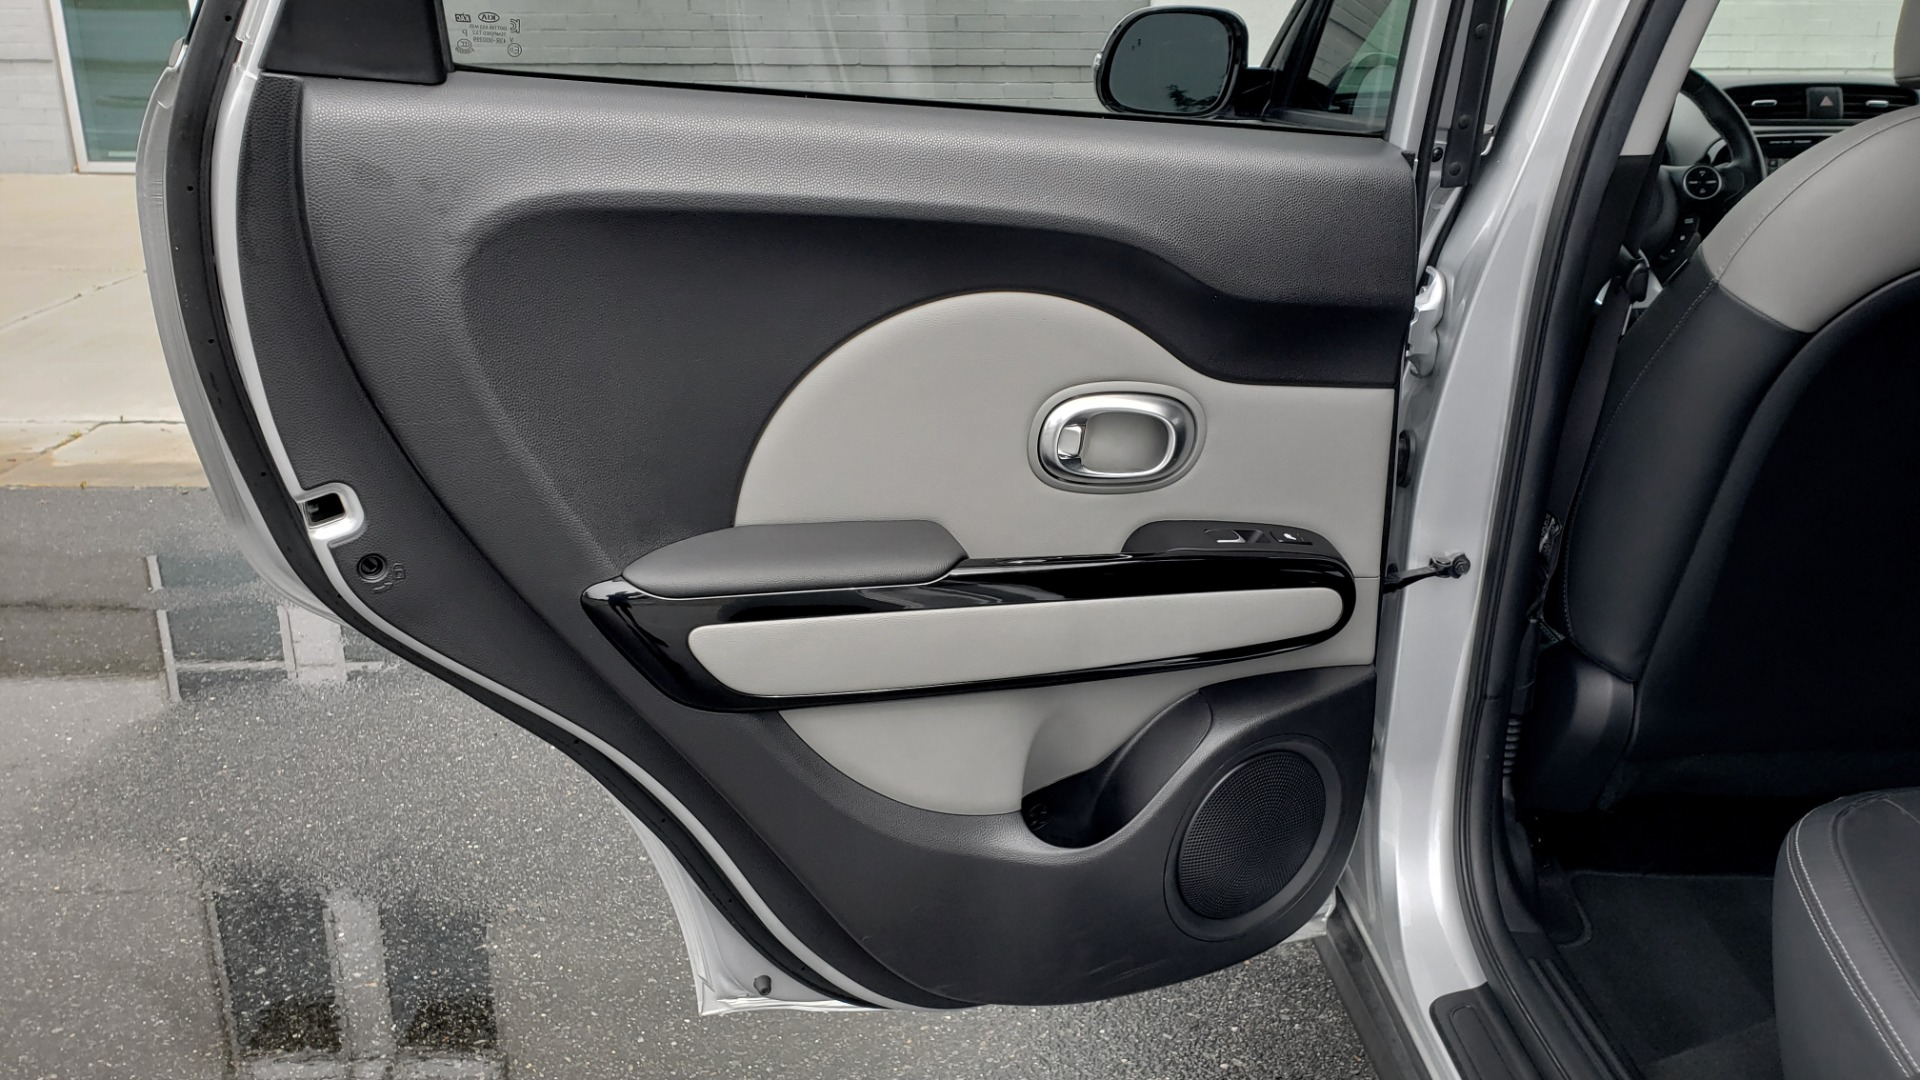 Used 2017 Kia SOUL PLUS / NAV / SUNROOF / LEATHER / HTD STS / REARVIEW for sale $16,995 at Formula Imports in Charlotte NC 28227 52